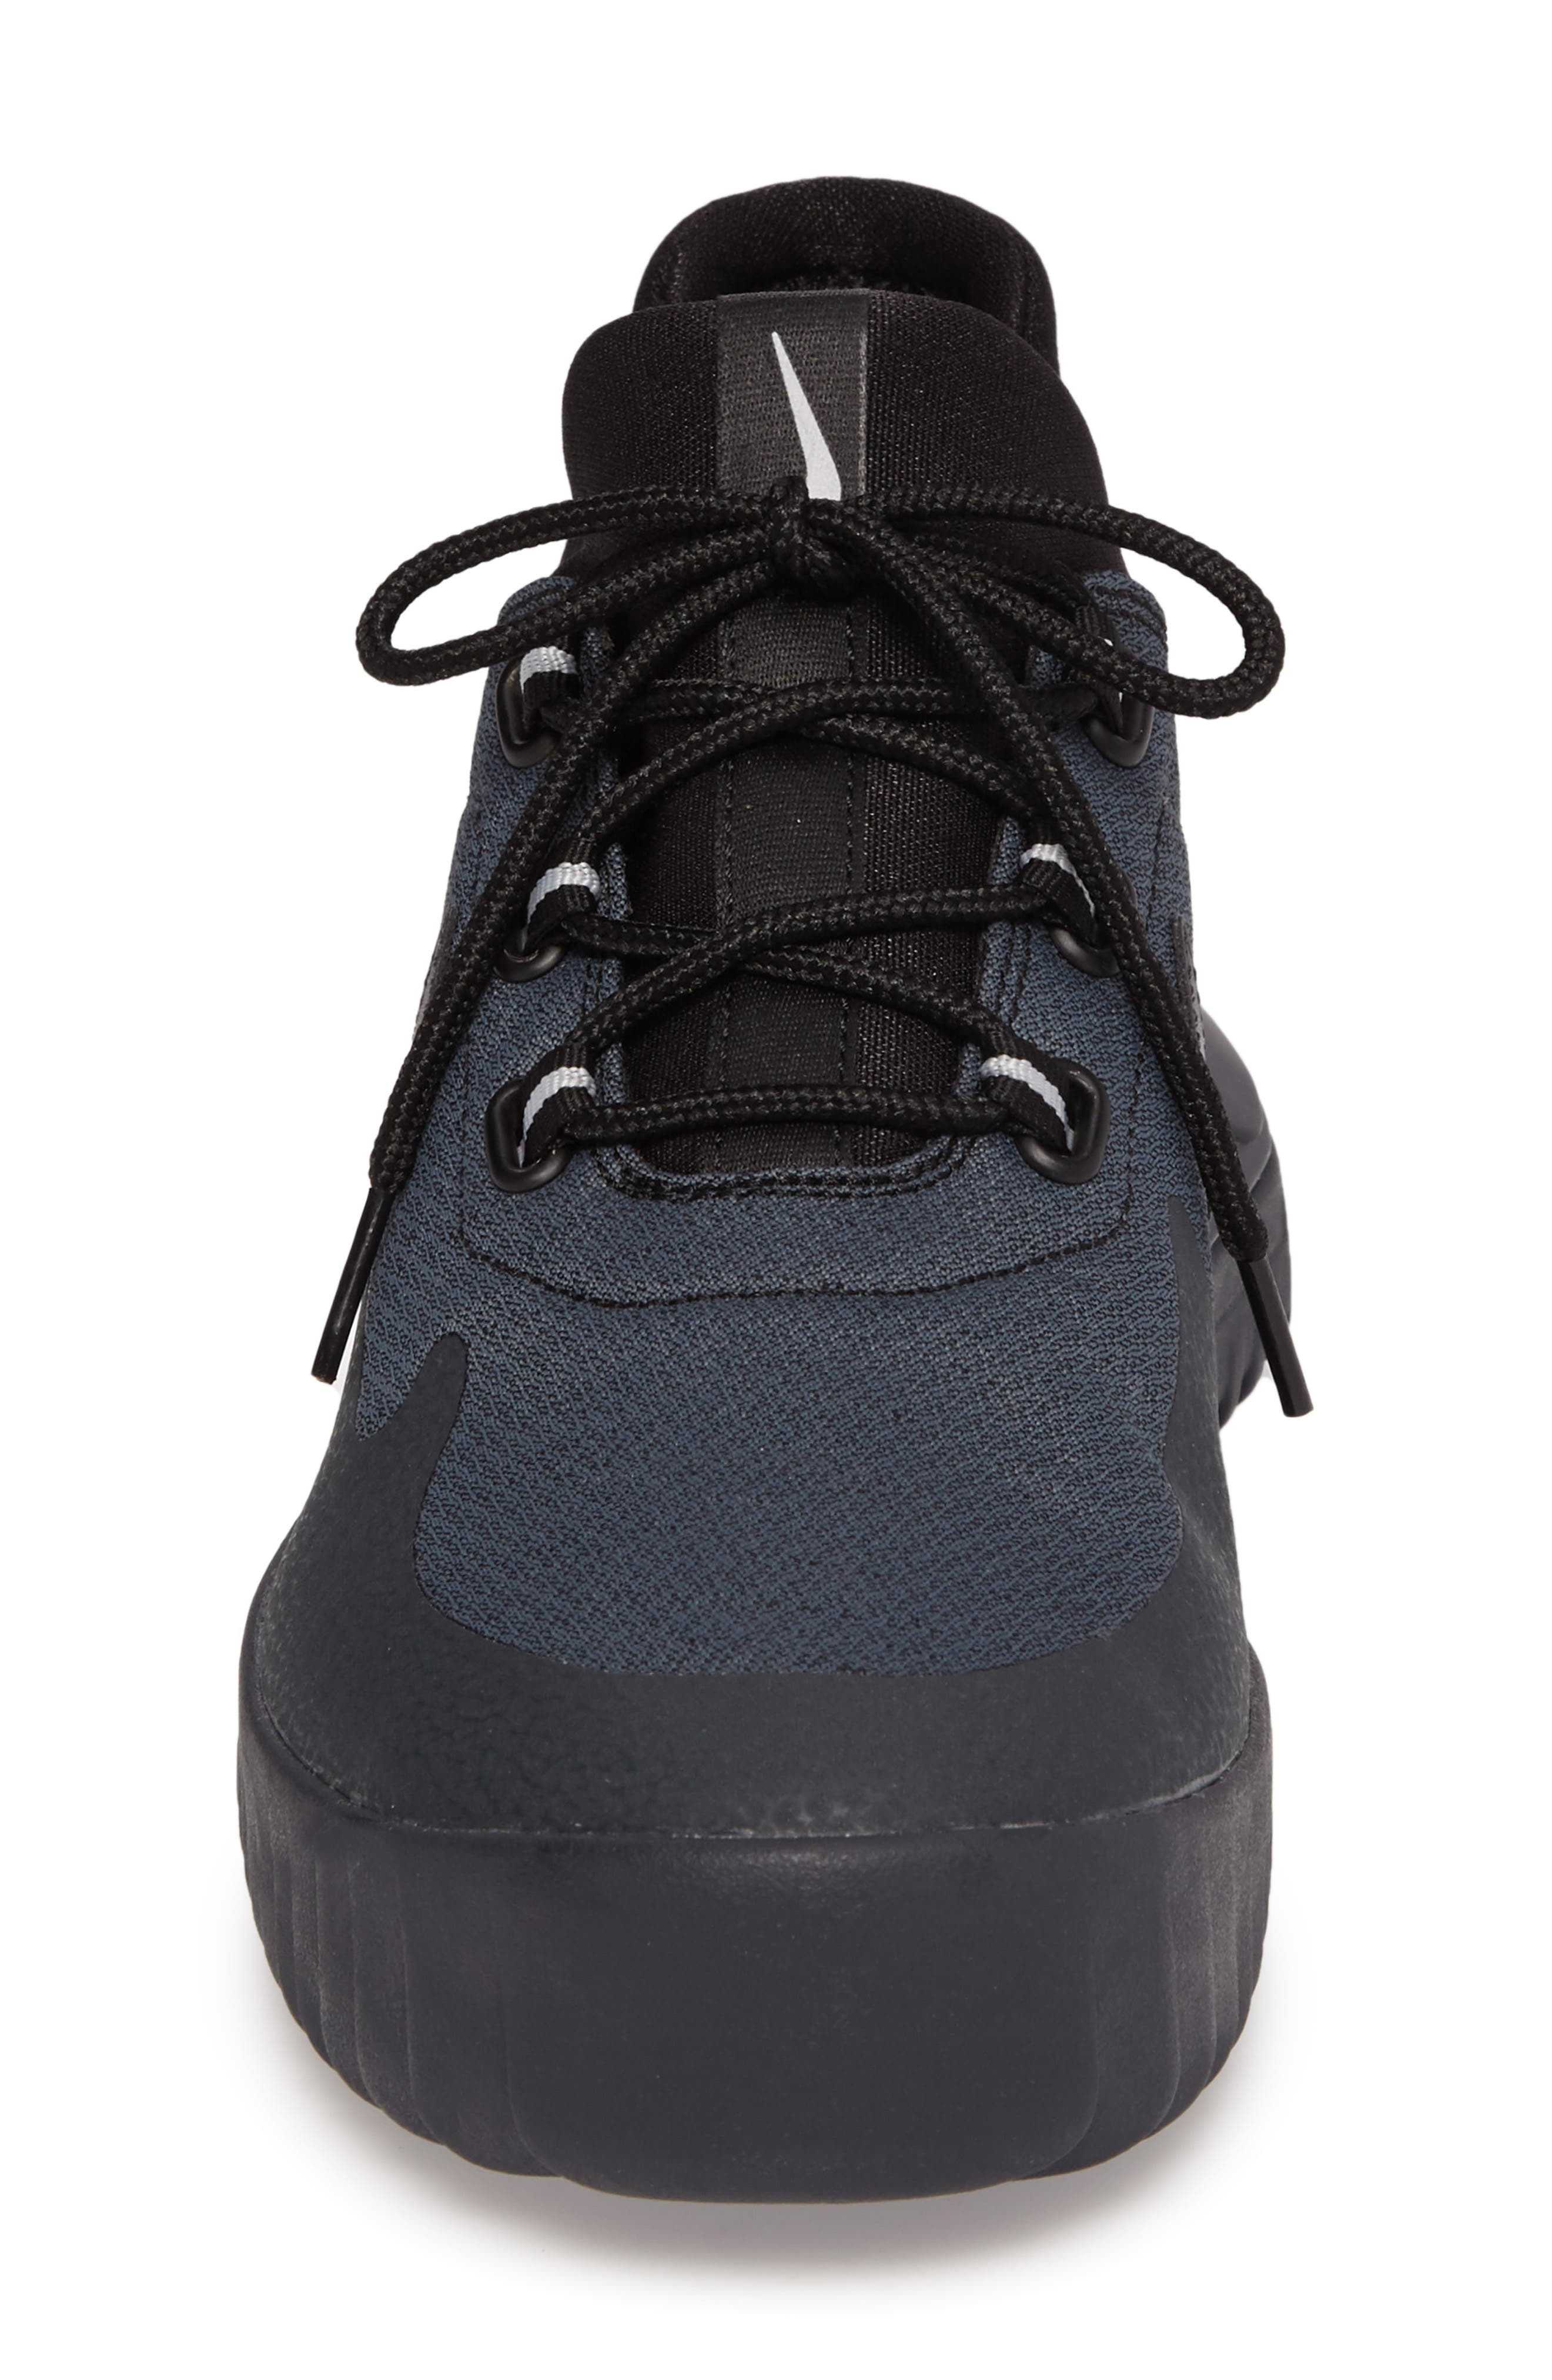 Air Wild Sneaker,                             Alternate thumbnail 4, color,                             Black/ Anthracite/ Grey